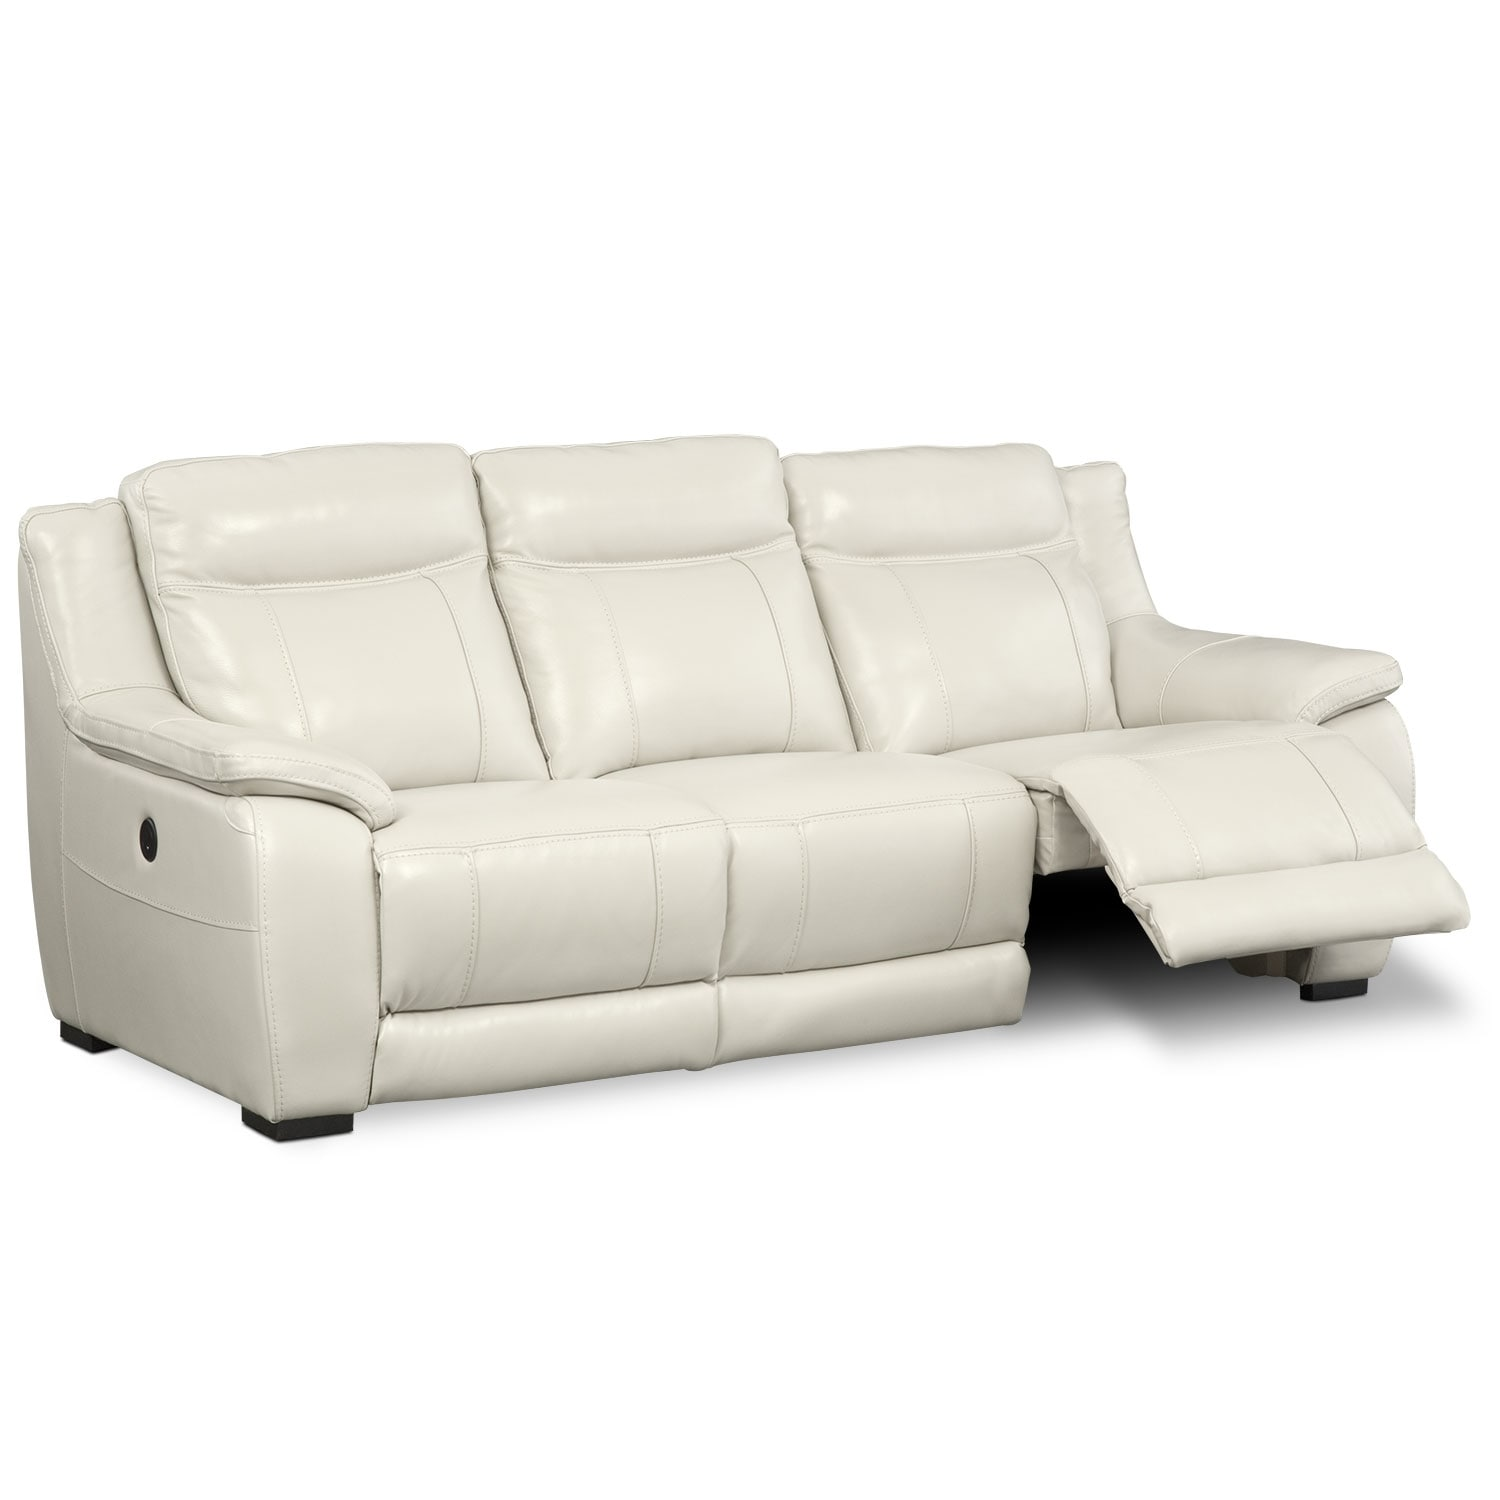 Lido Power Reclining Sofa Ivory Value City Furniture